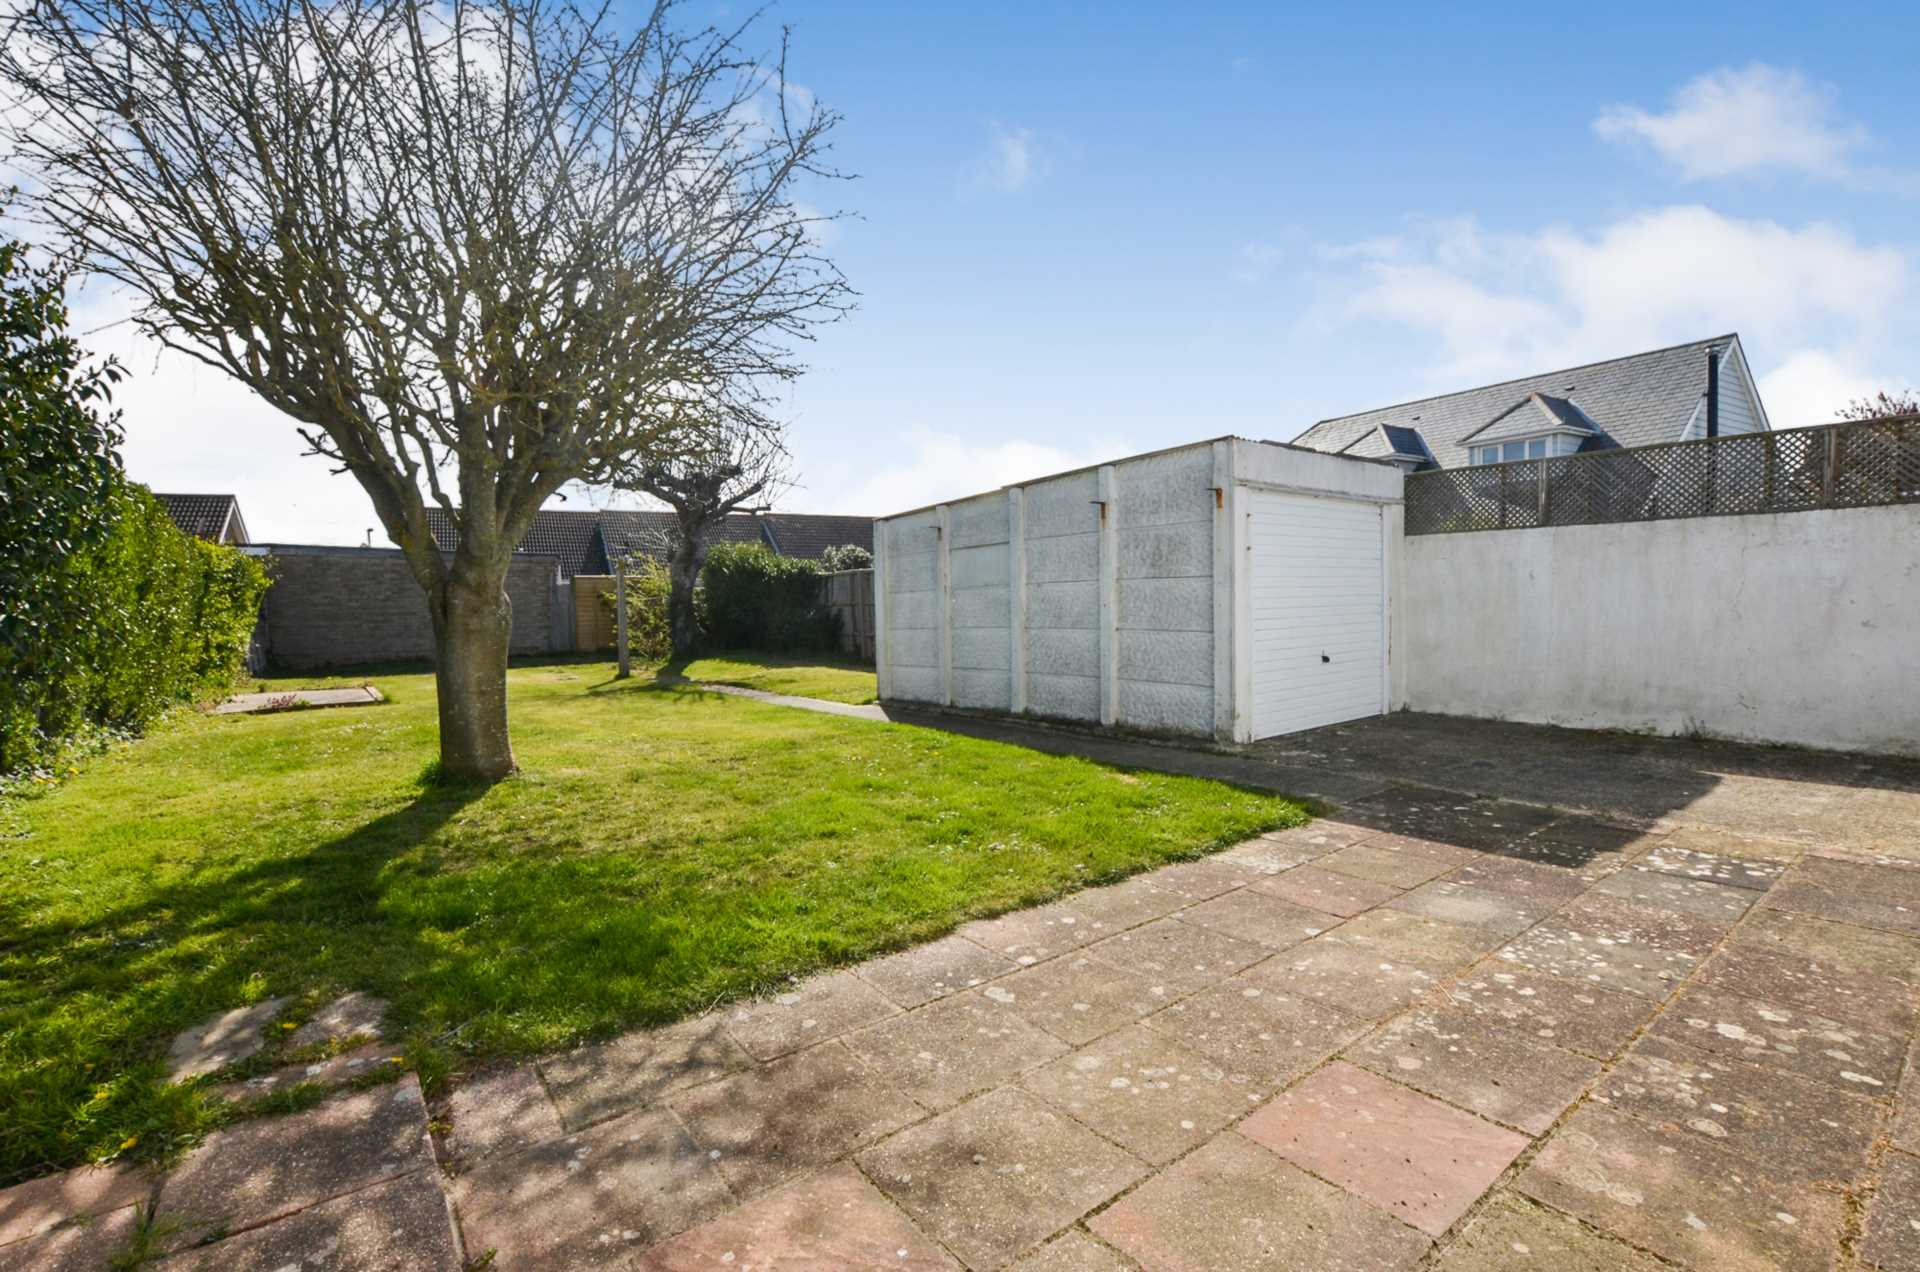 Little Rumford, Russell Road, West Wittering, PO20 8EF, Image 10